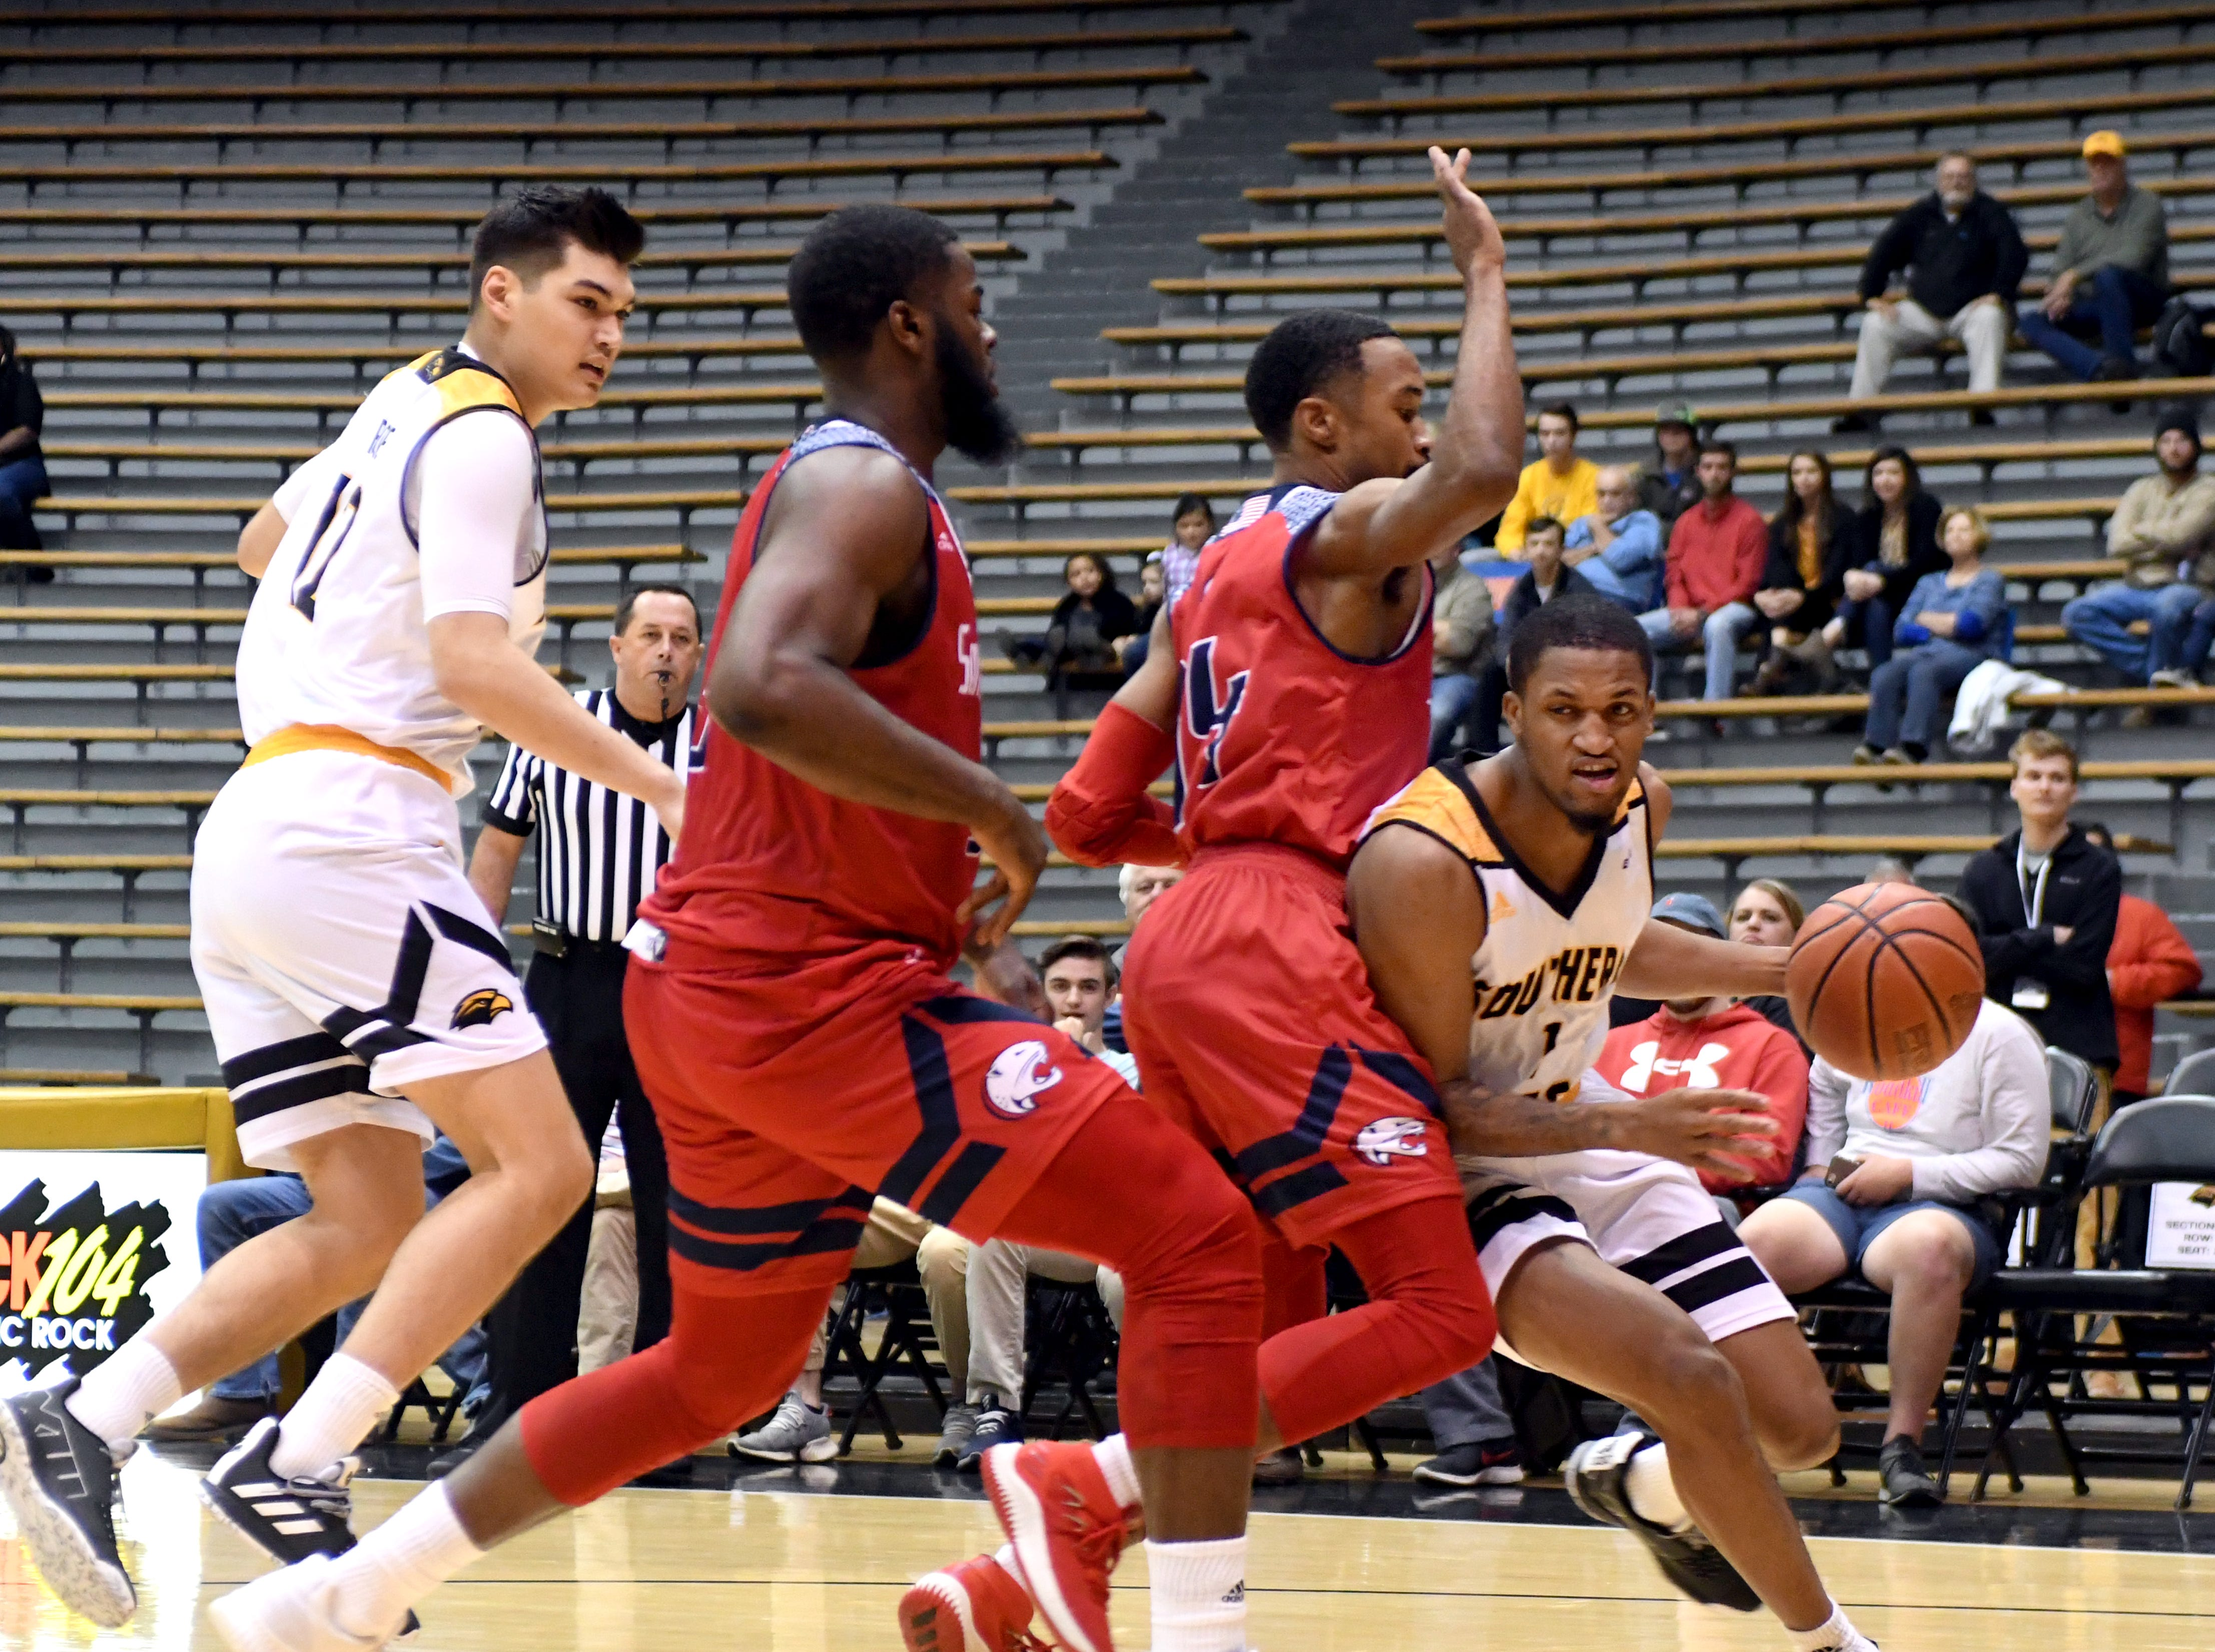 Southern Miss guard Cortez Edwards fights past a defender in a game against South Alabama in Reed Green Coliseum on Wednesday, November 28, 2018.